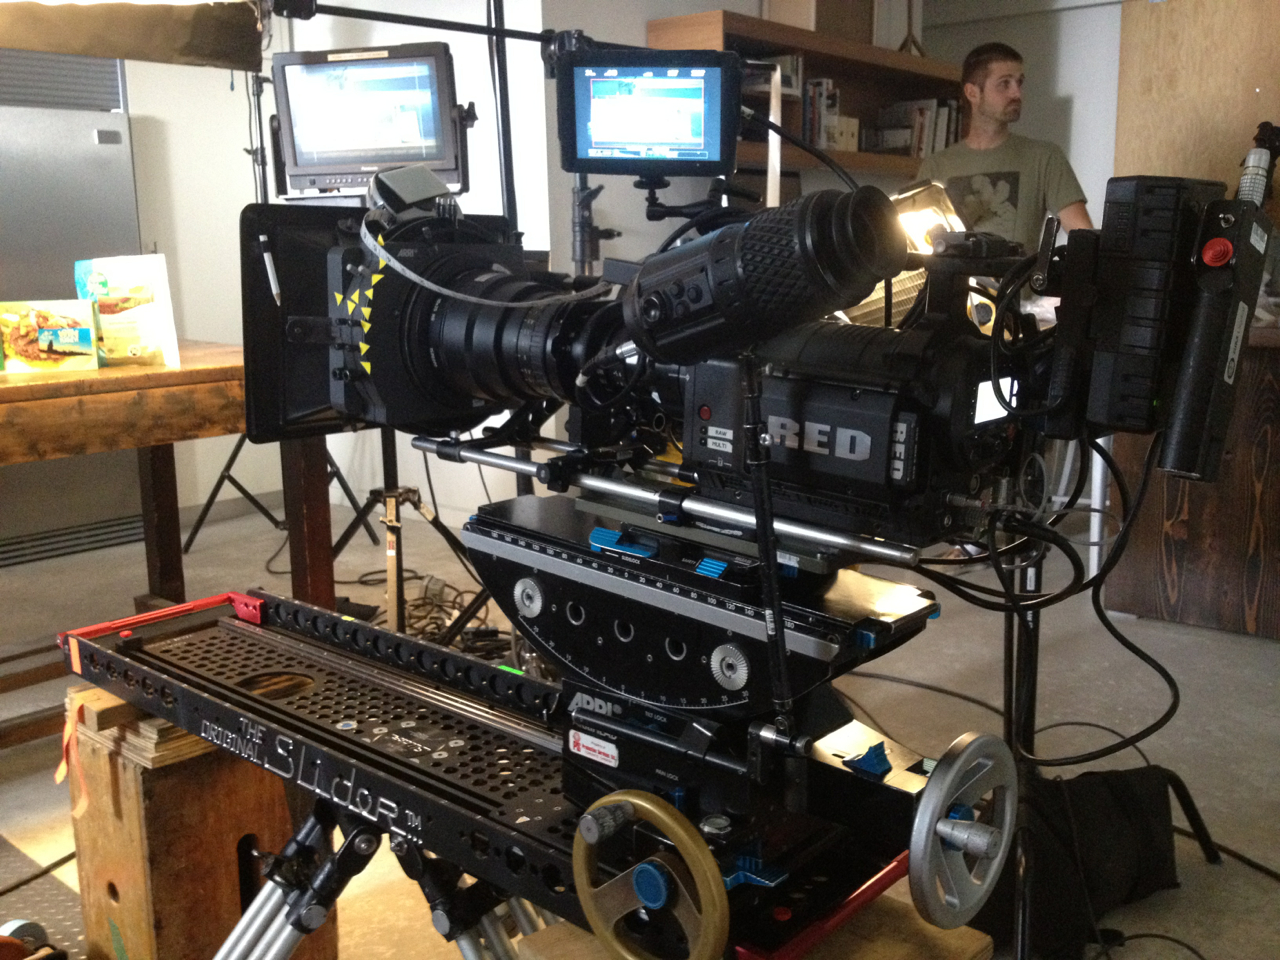 From today's job- a RED1 system with a 25-250mm zoom.  Remote focus via Barrtech system as anything connected to the camera might have compromised the smoothness of the move- made use of an Arri geared head for precision framing and operating on the buttery Original Slider.Also had a Microforce zoom control attached. Power was provided AC while remote focus was v-dock batteries.